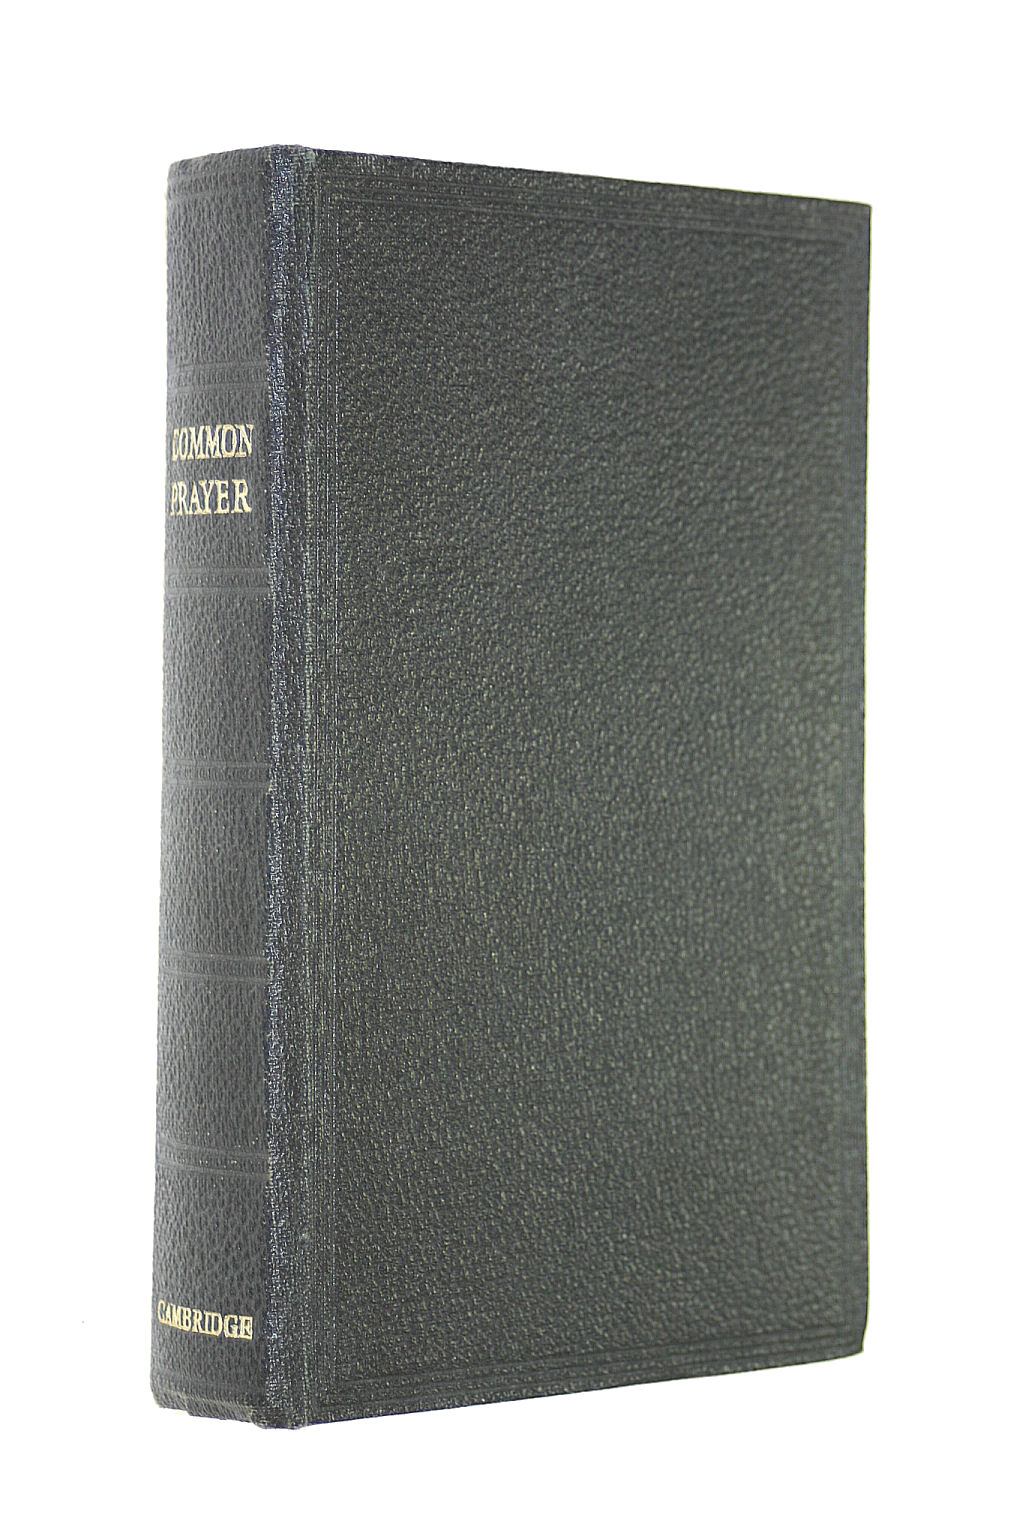 Image for Book Of Common Prayer & Administration Of The Sacraments & Other Rites & Ceremonies Of The Church According To The Use Of The Church Of England Together With The Psalter Or Psalms Of David [In White Leather And Complete With Slip Case]